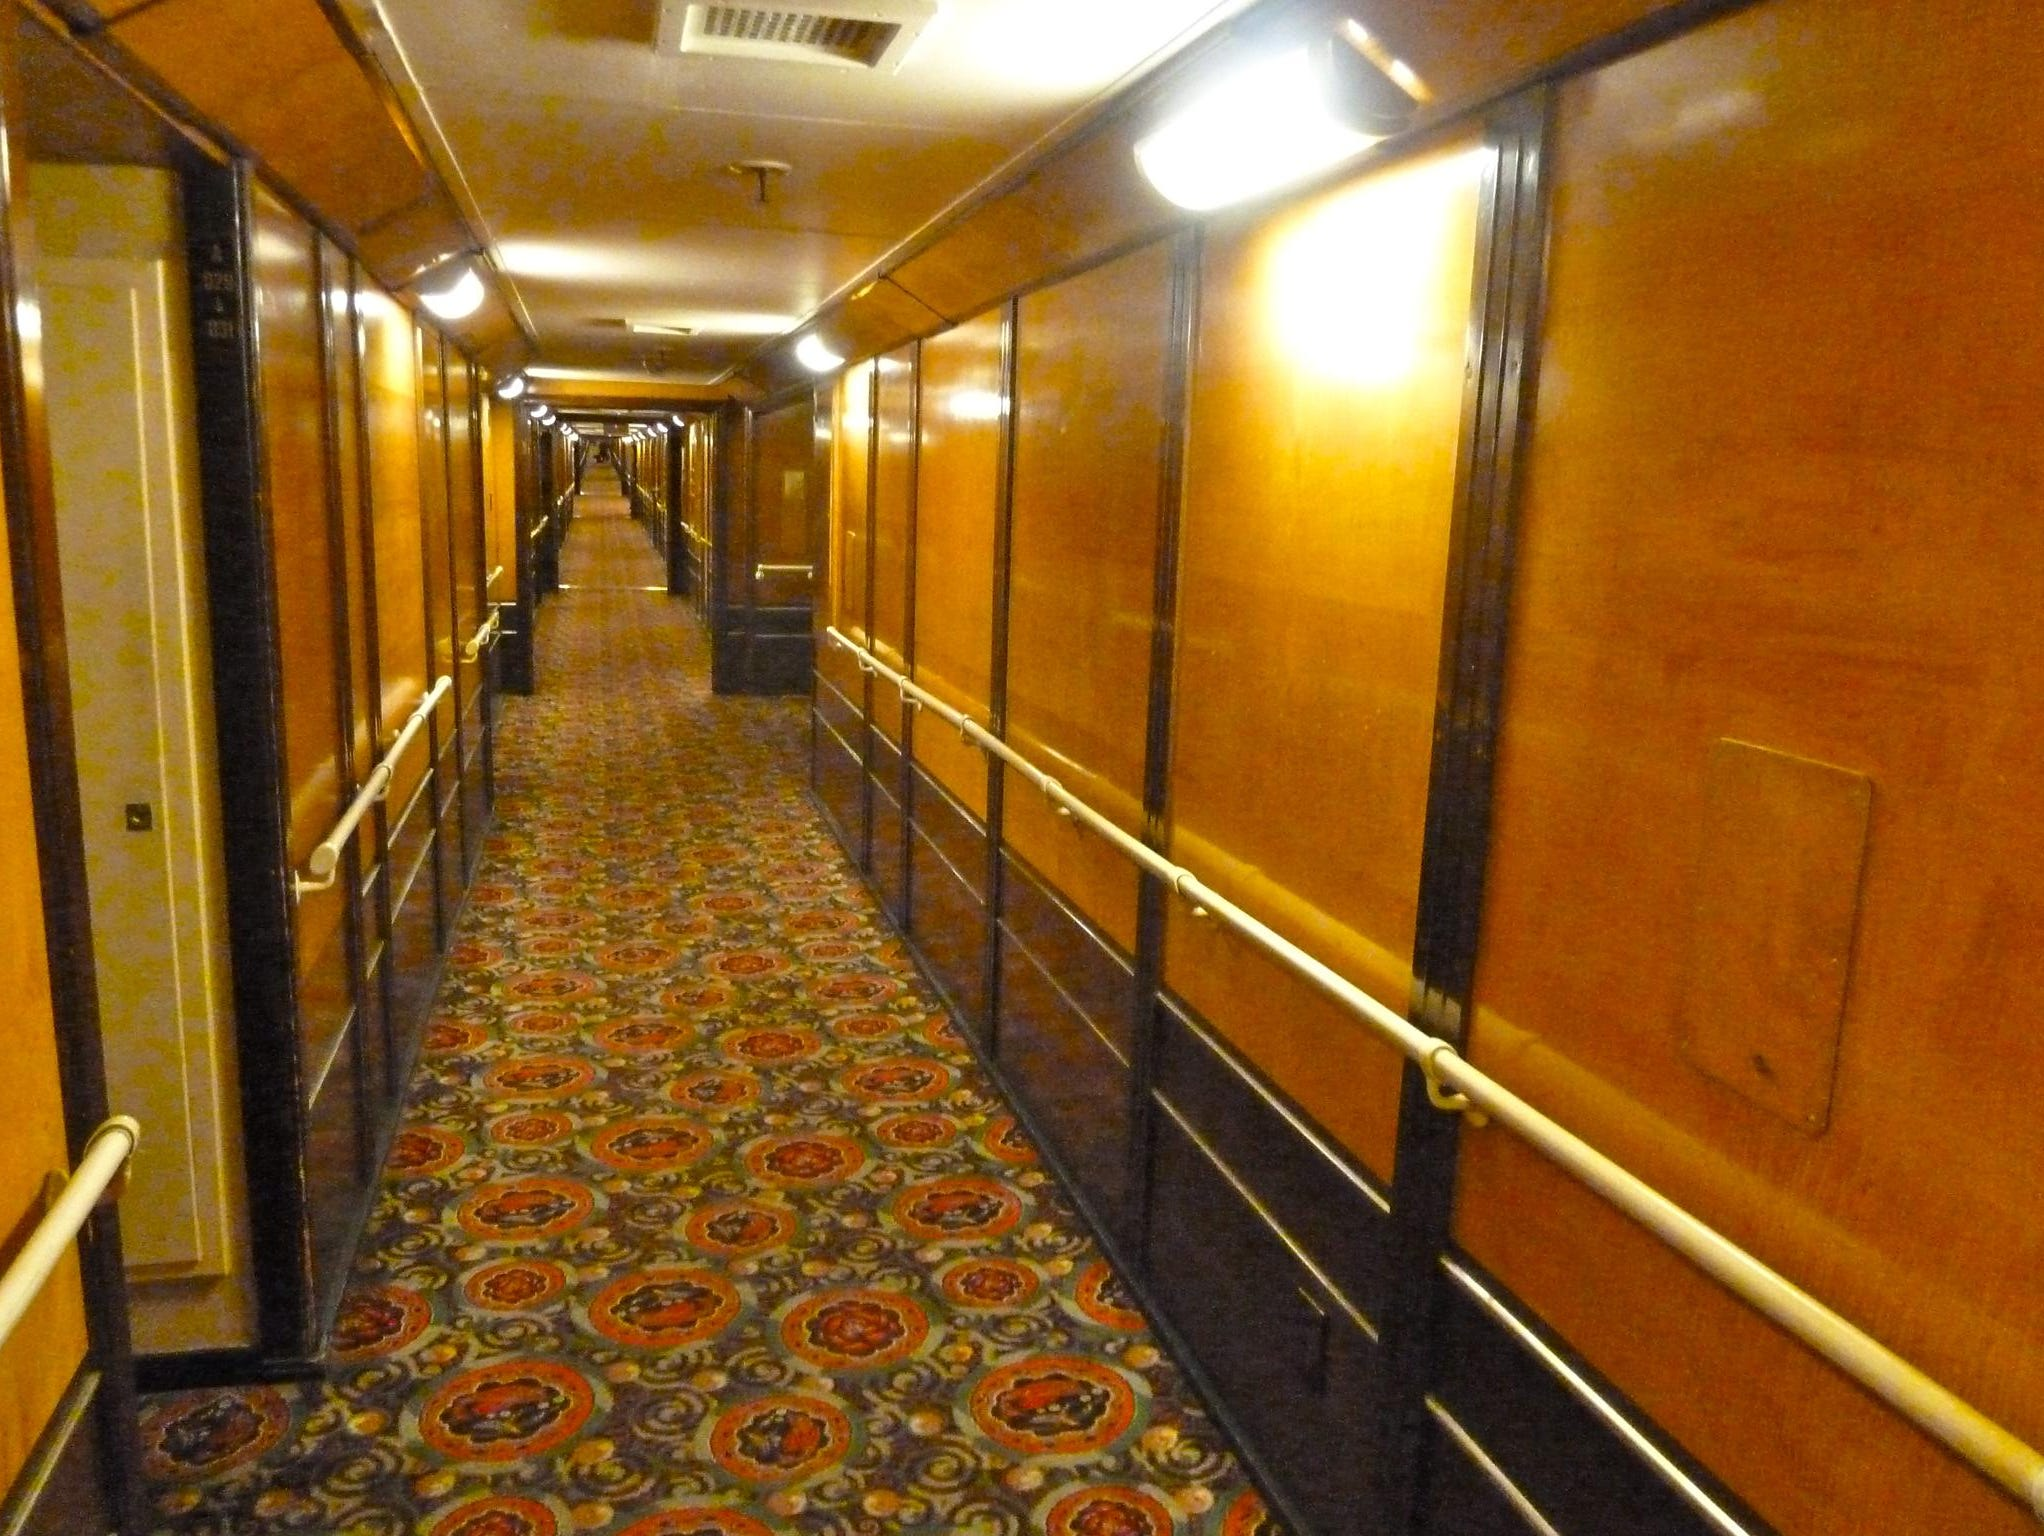 Passageways in the Queen Mary Hotel feature exquisitely-polished burled maple and mahogany woodwork.